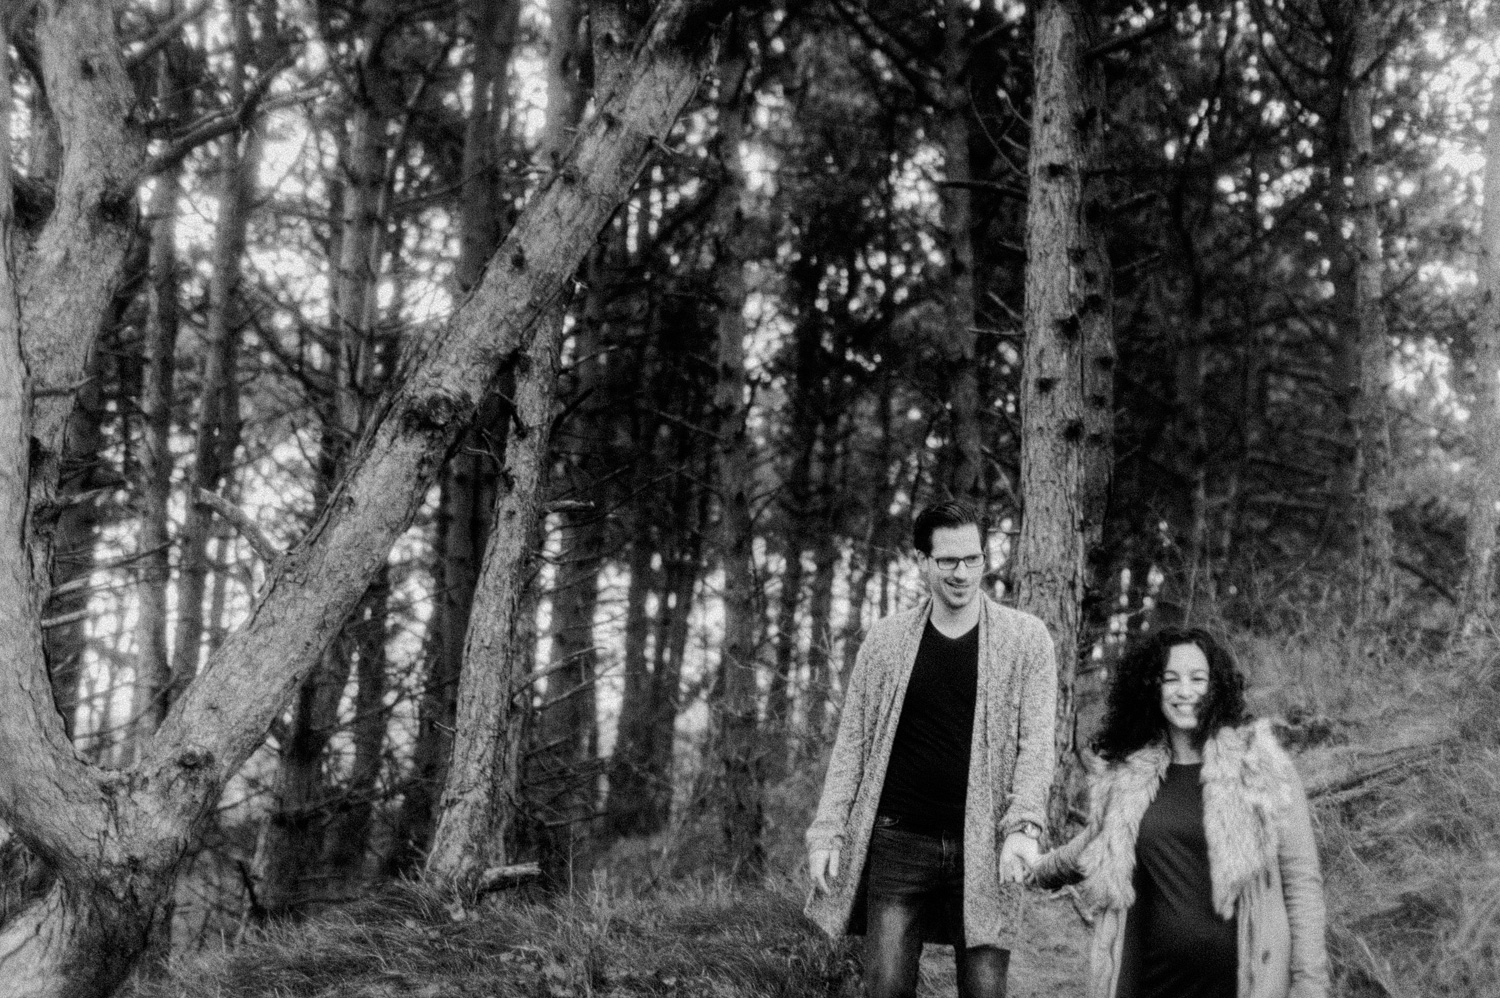 Couple walking holding hands and smiling in forrest